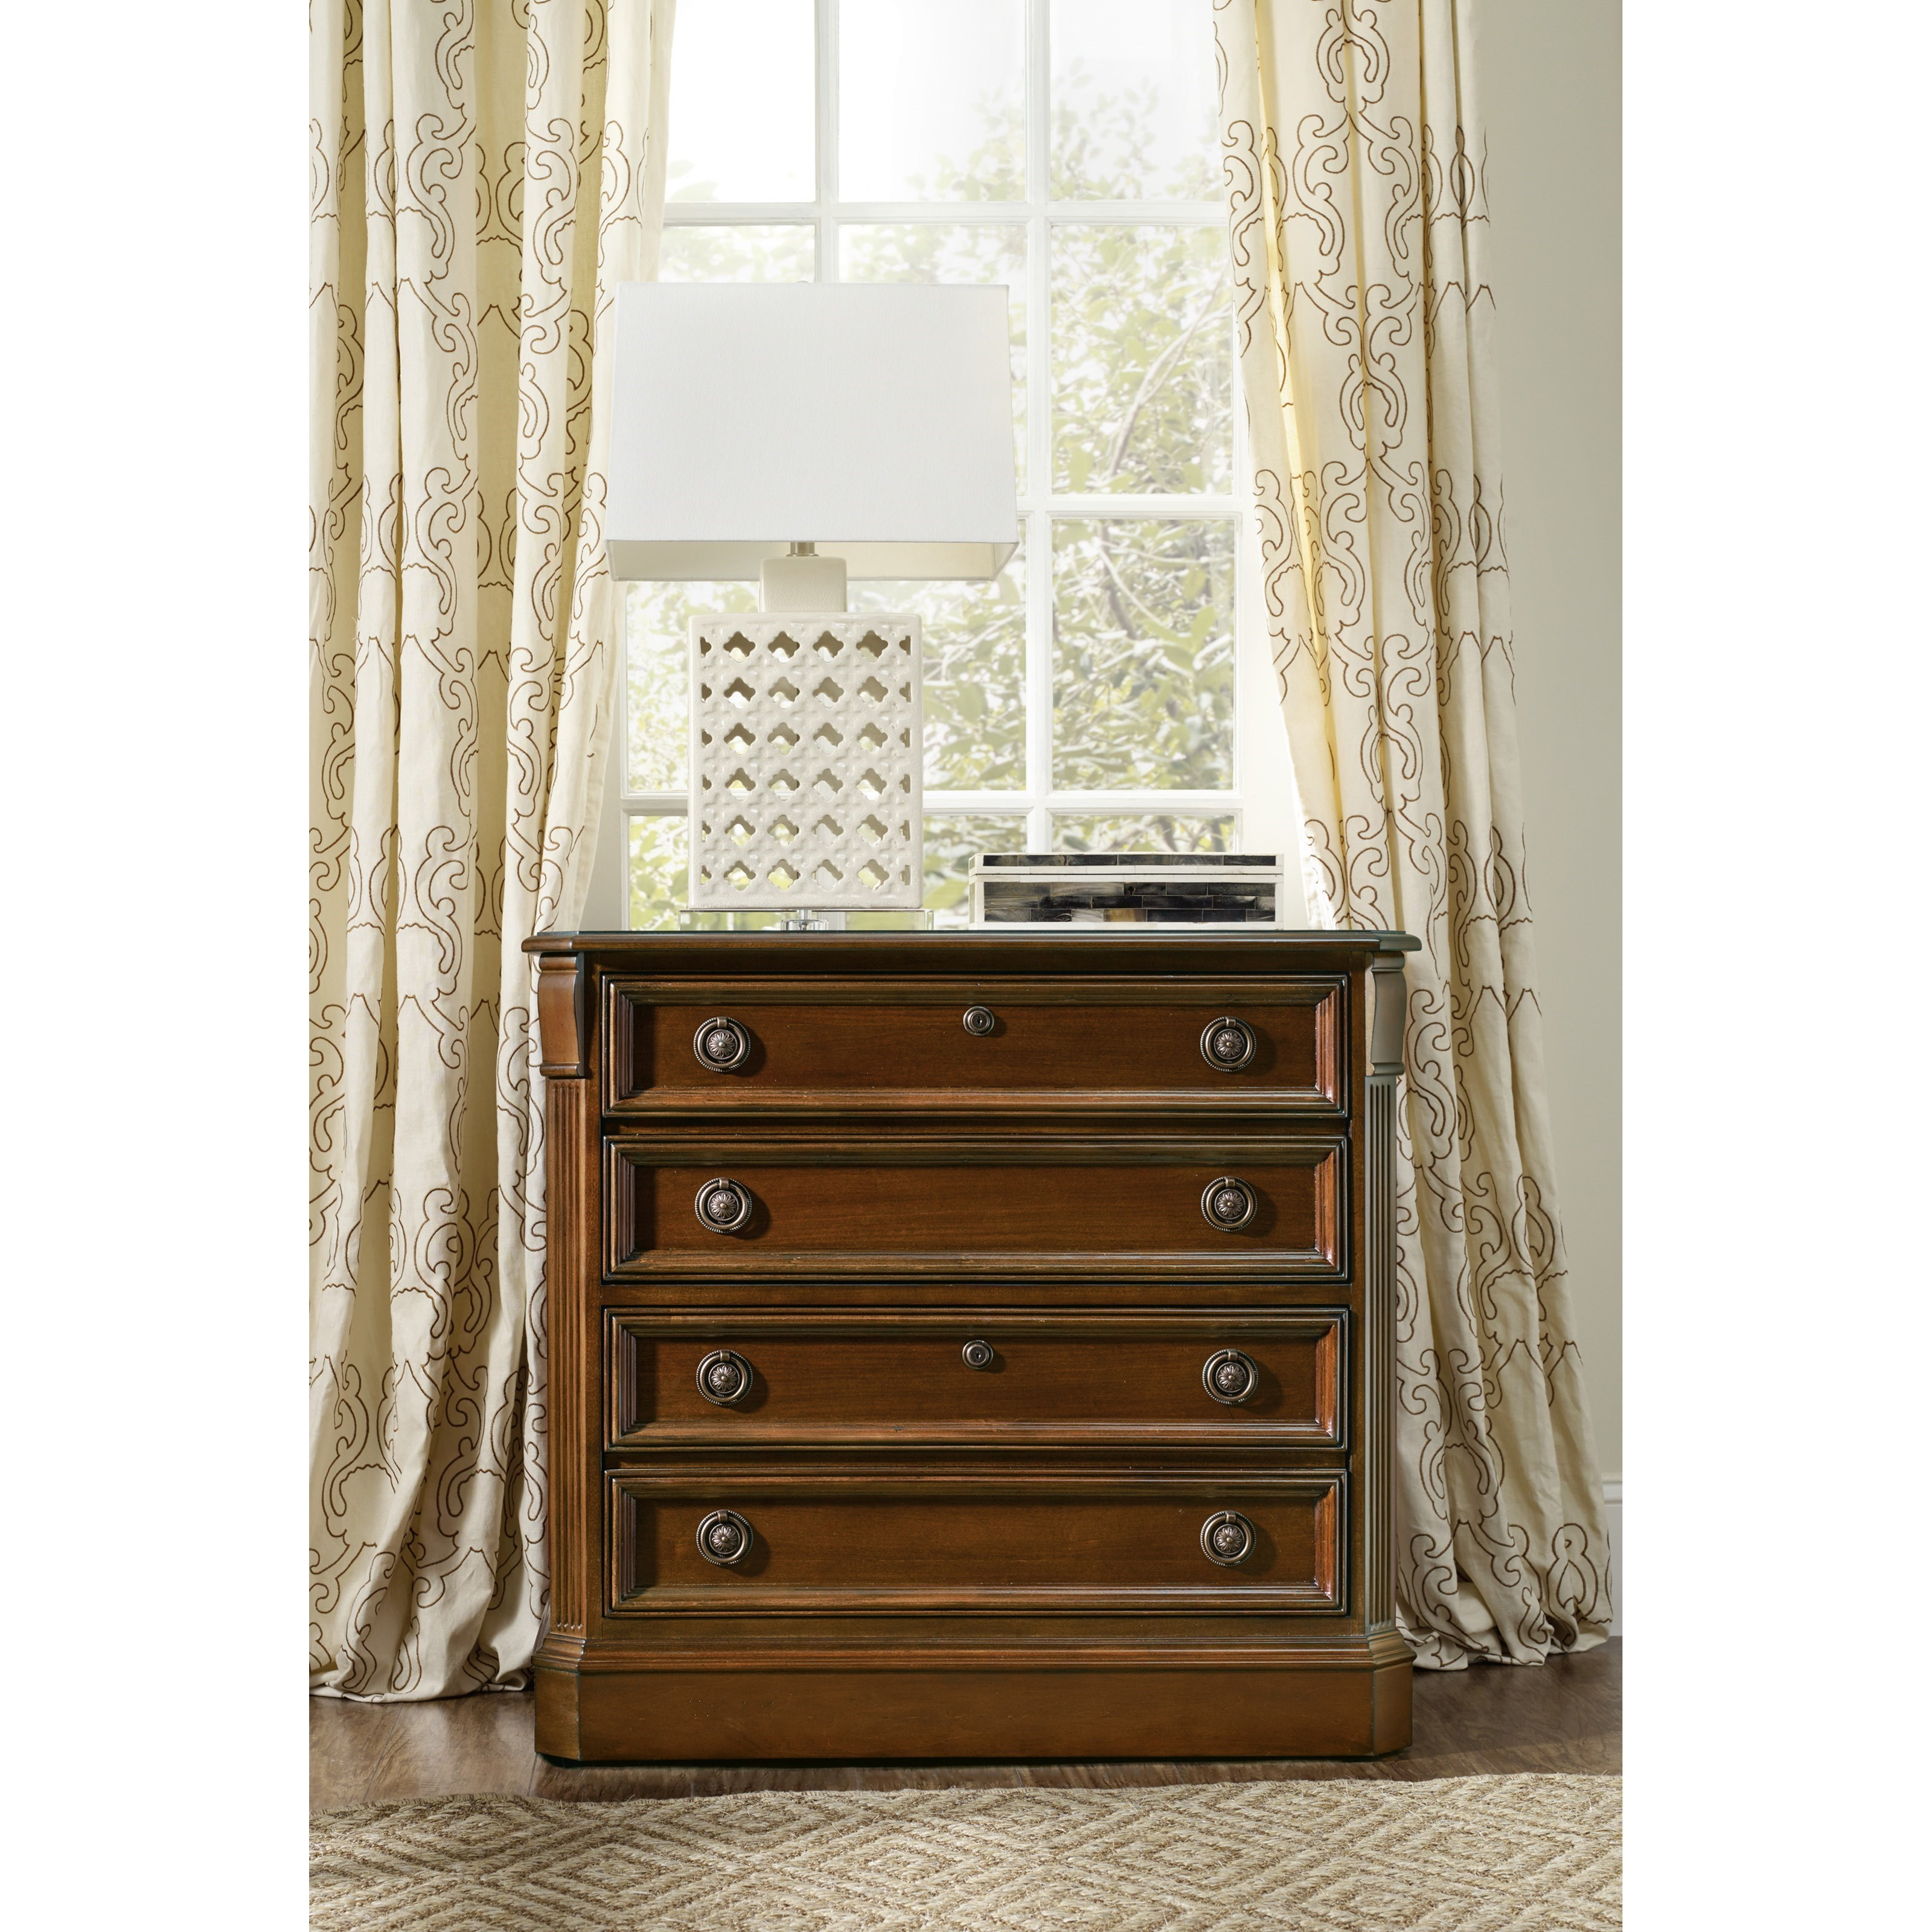 Hooker furniture brookhaven 281 10 566 lateral file with for Brookhaven kitchen cabinets price